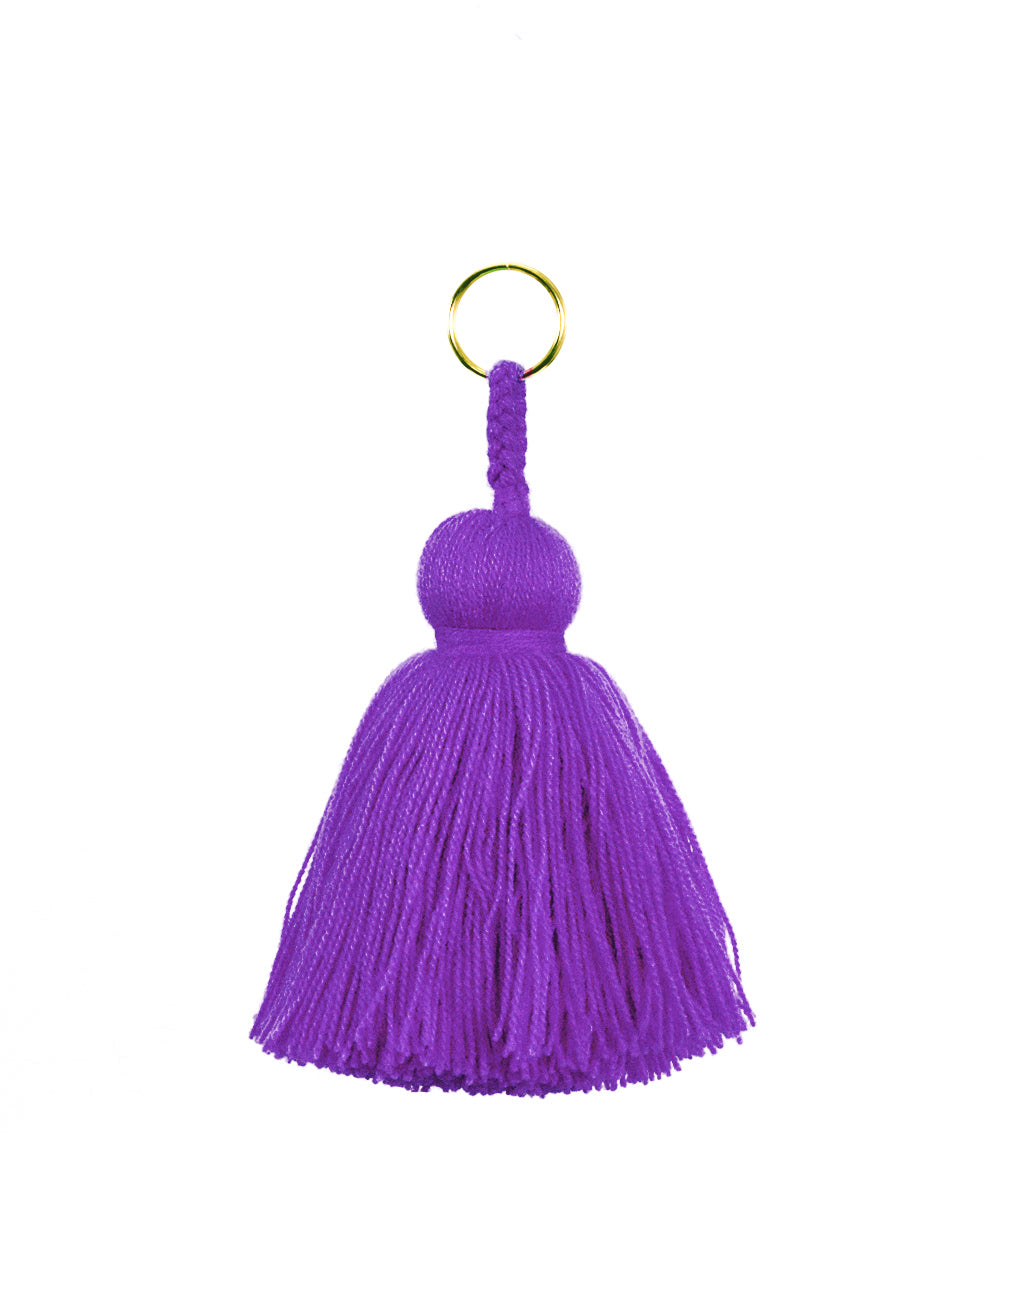 Fair Trade, Handmade Purple Tassel Keychain